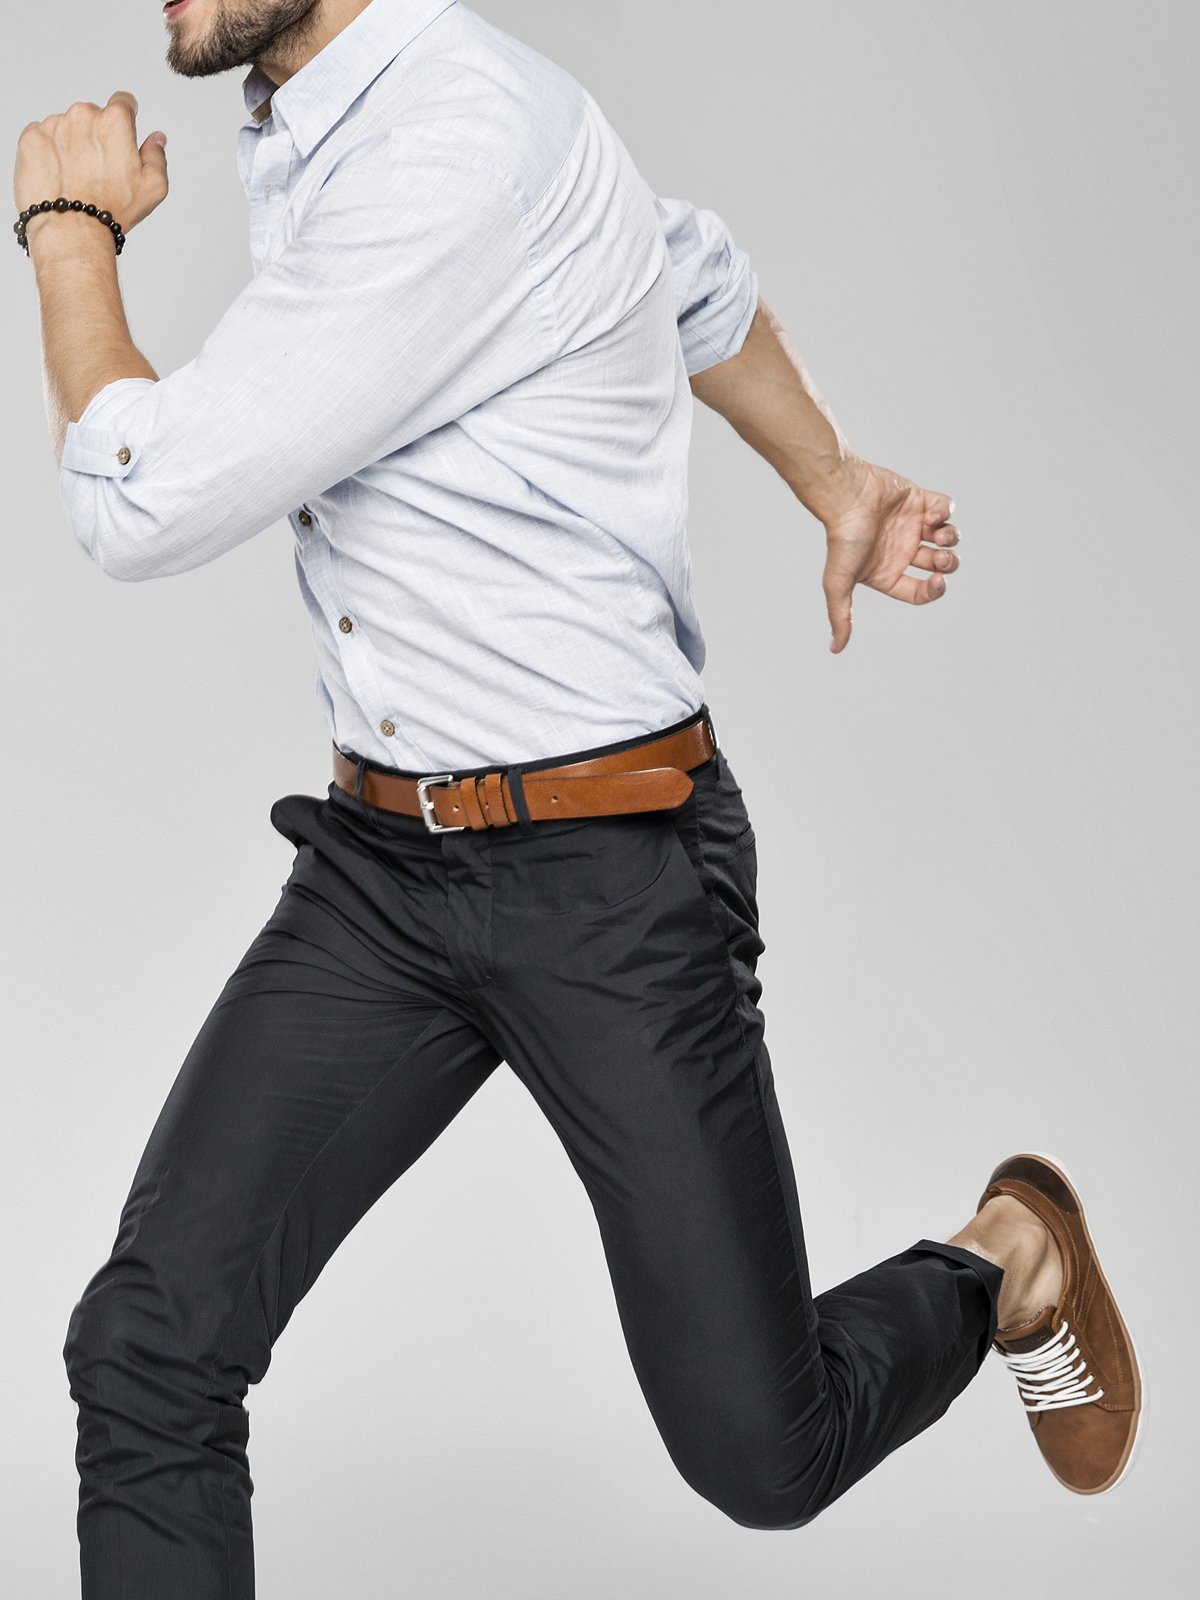 male model jumping posing